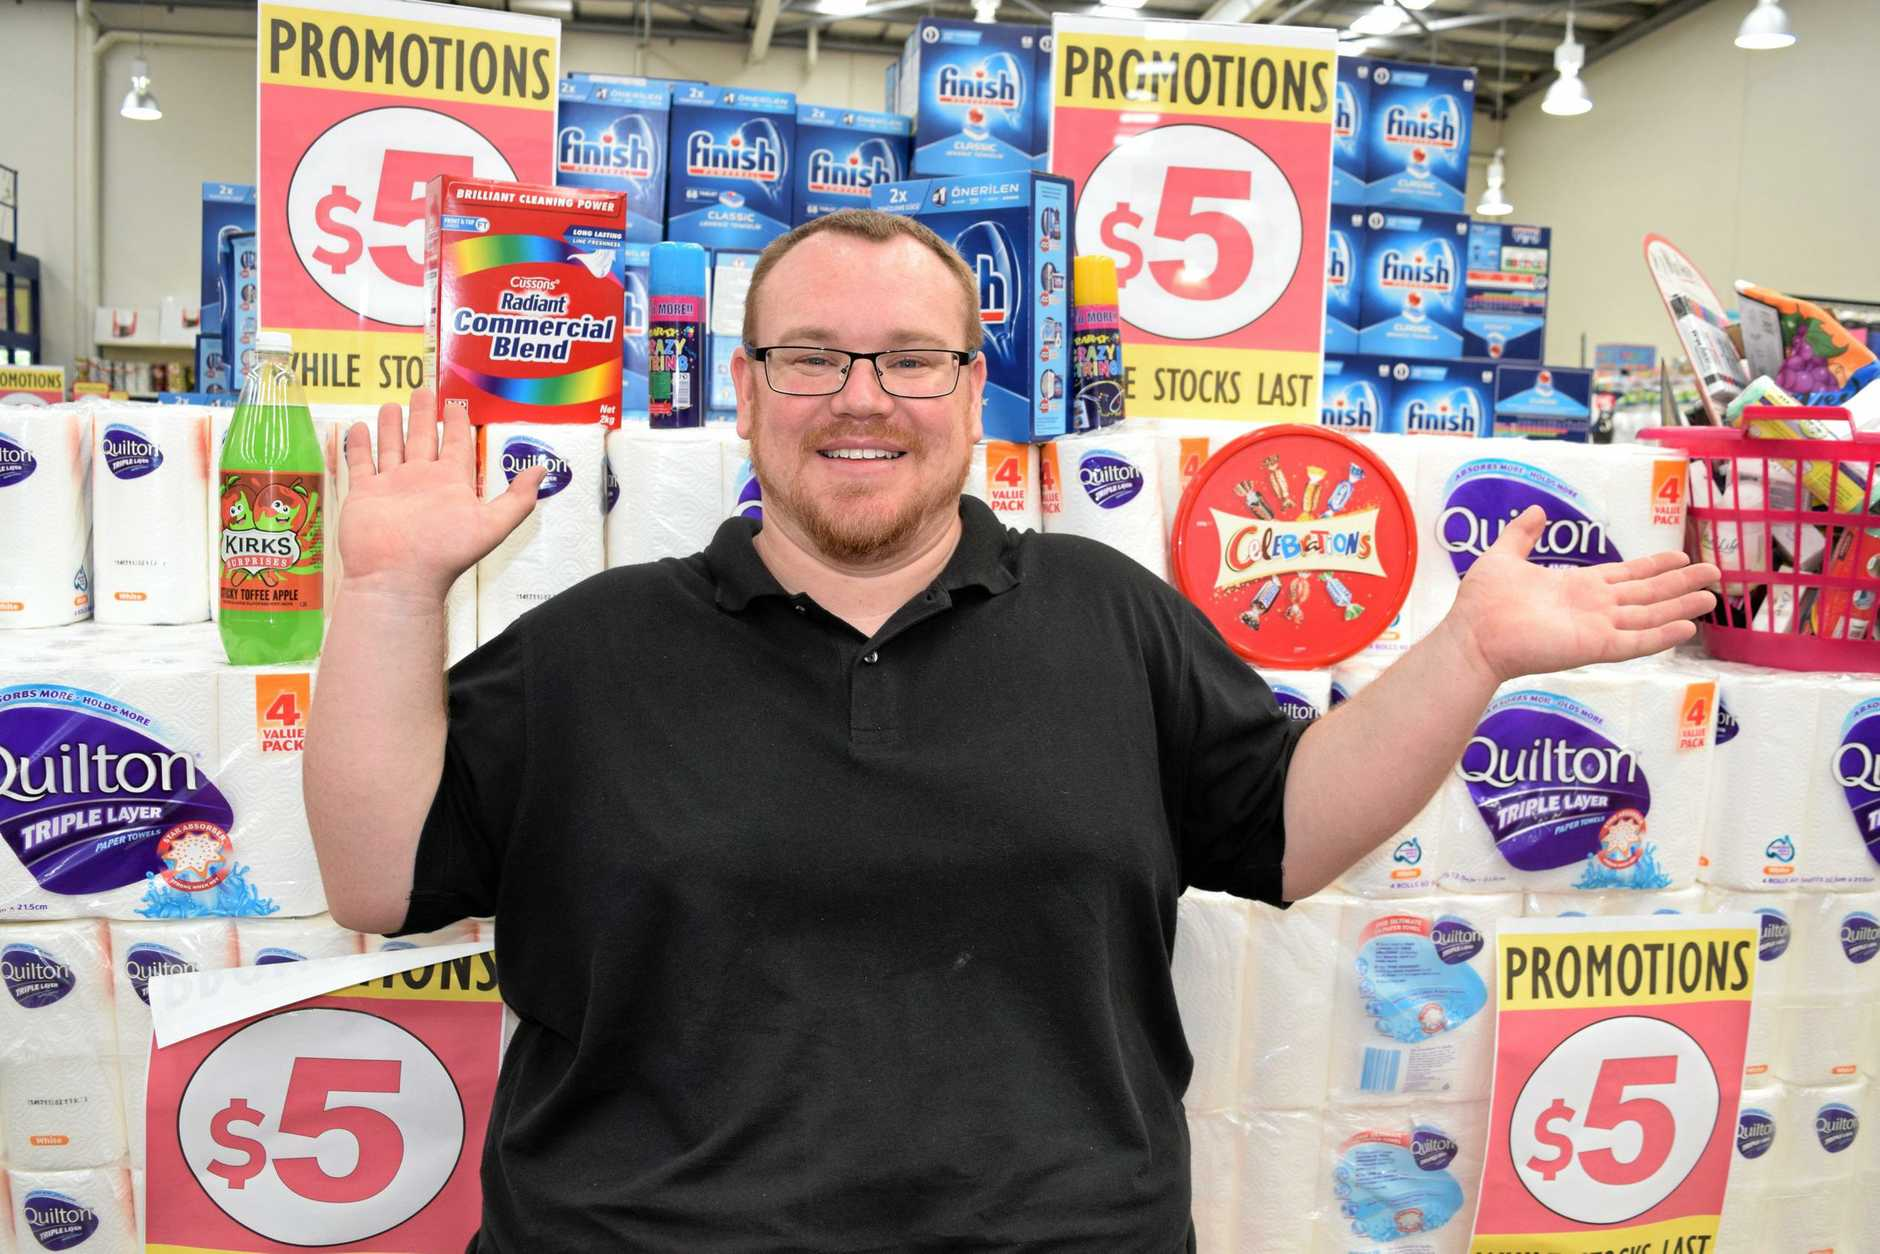 Silly Solly's CEO Brad Walton is over the moon to offer